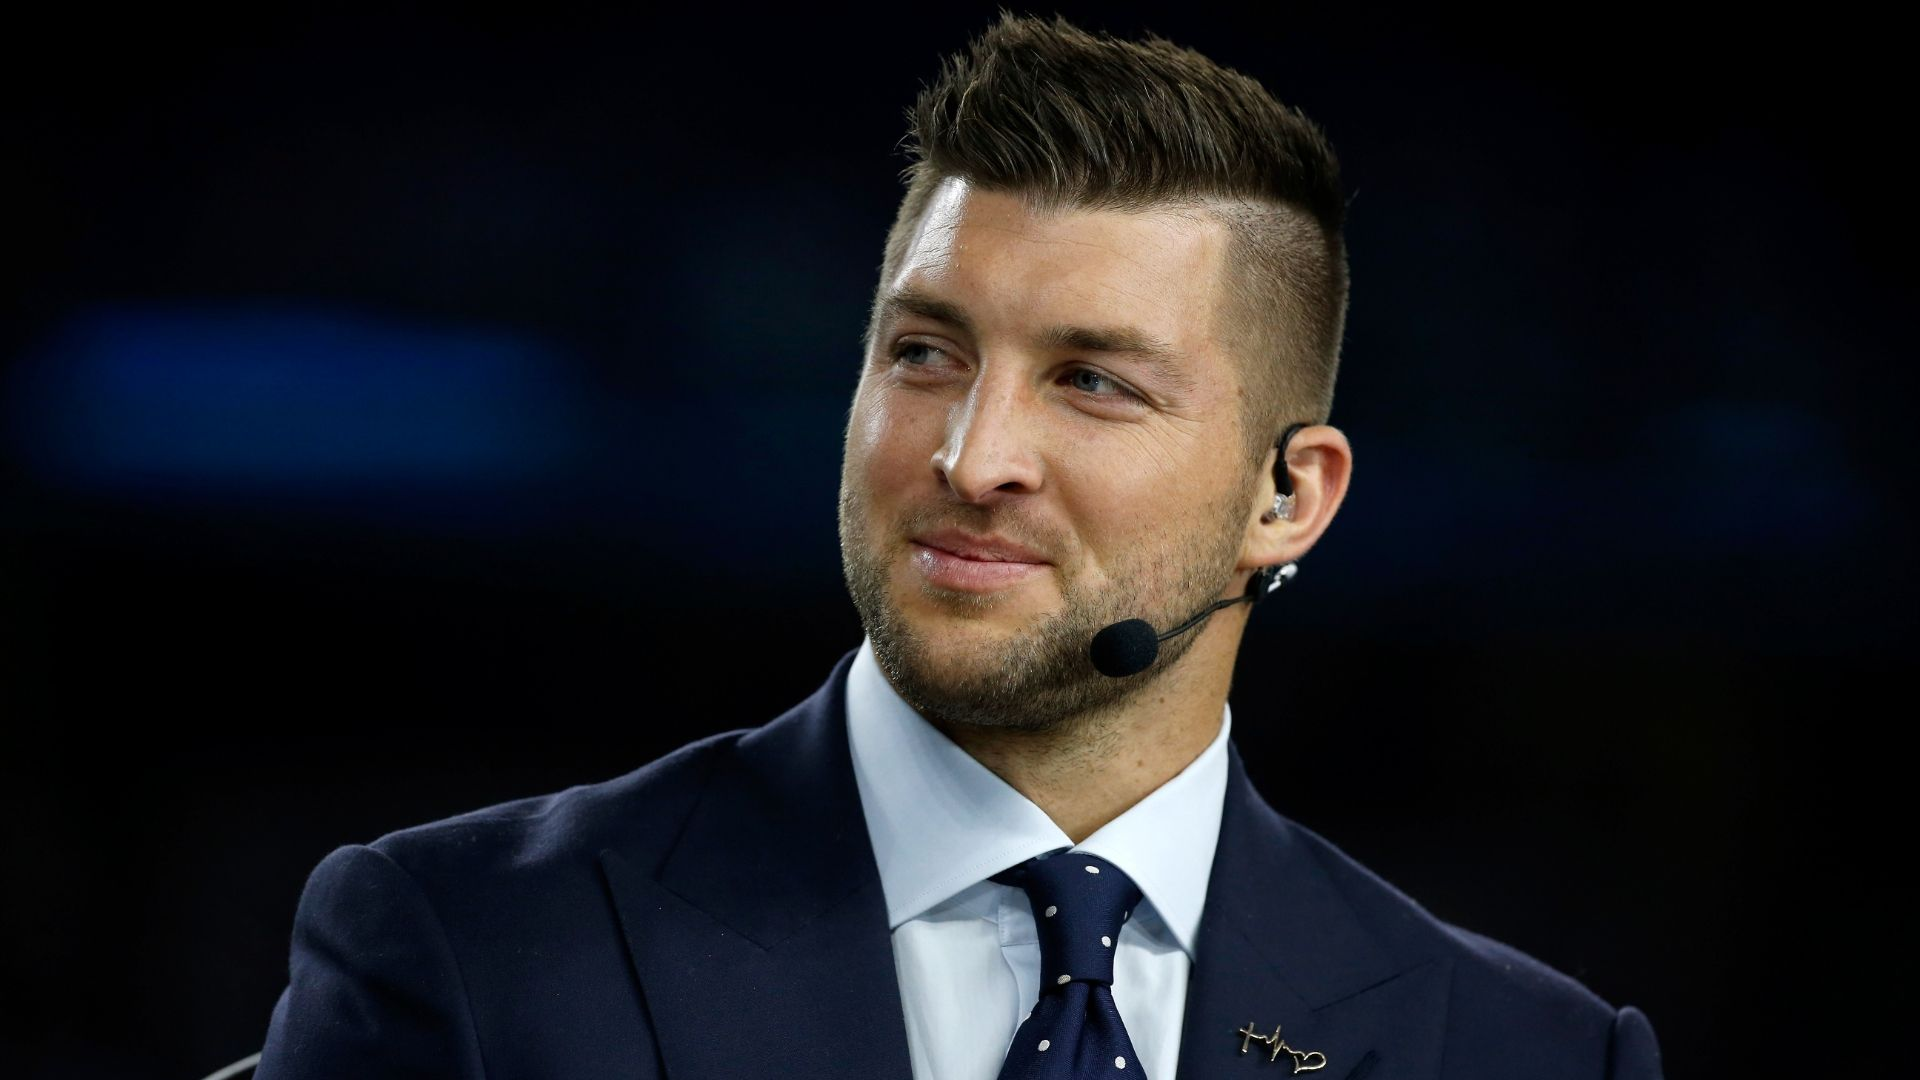 https://secure.espncdn.com/combiner/i?img=/media/motion/2016/0809/dm_160809_schefter_on_tebow/dm_160809_schefter_on_tebow.jpg